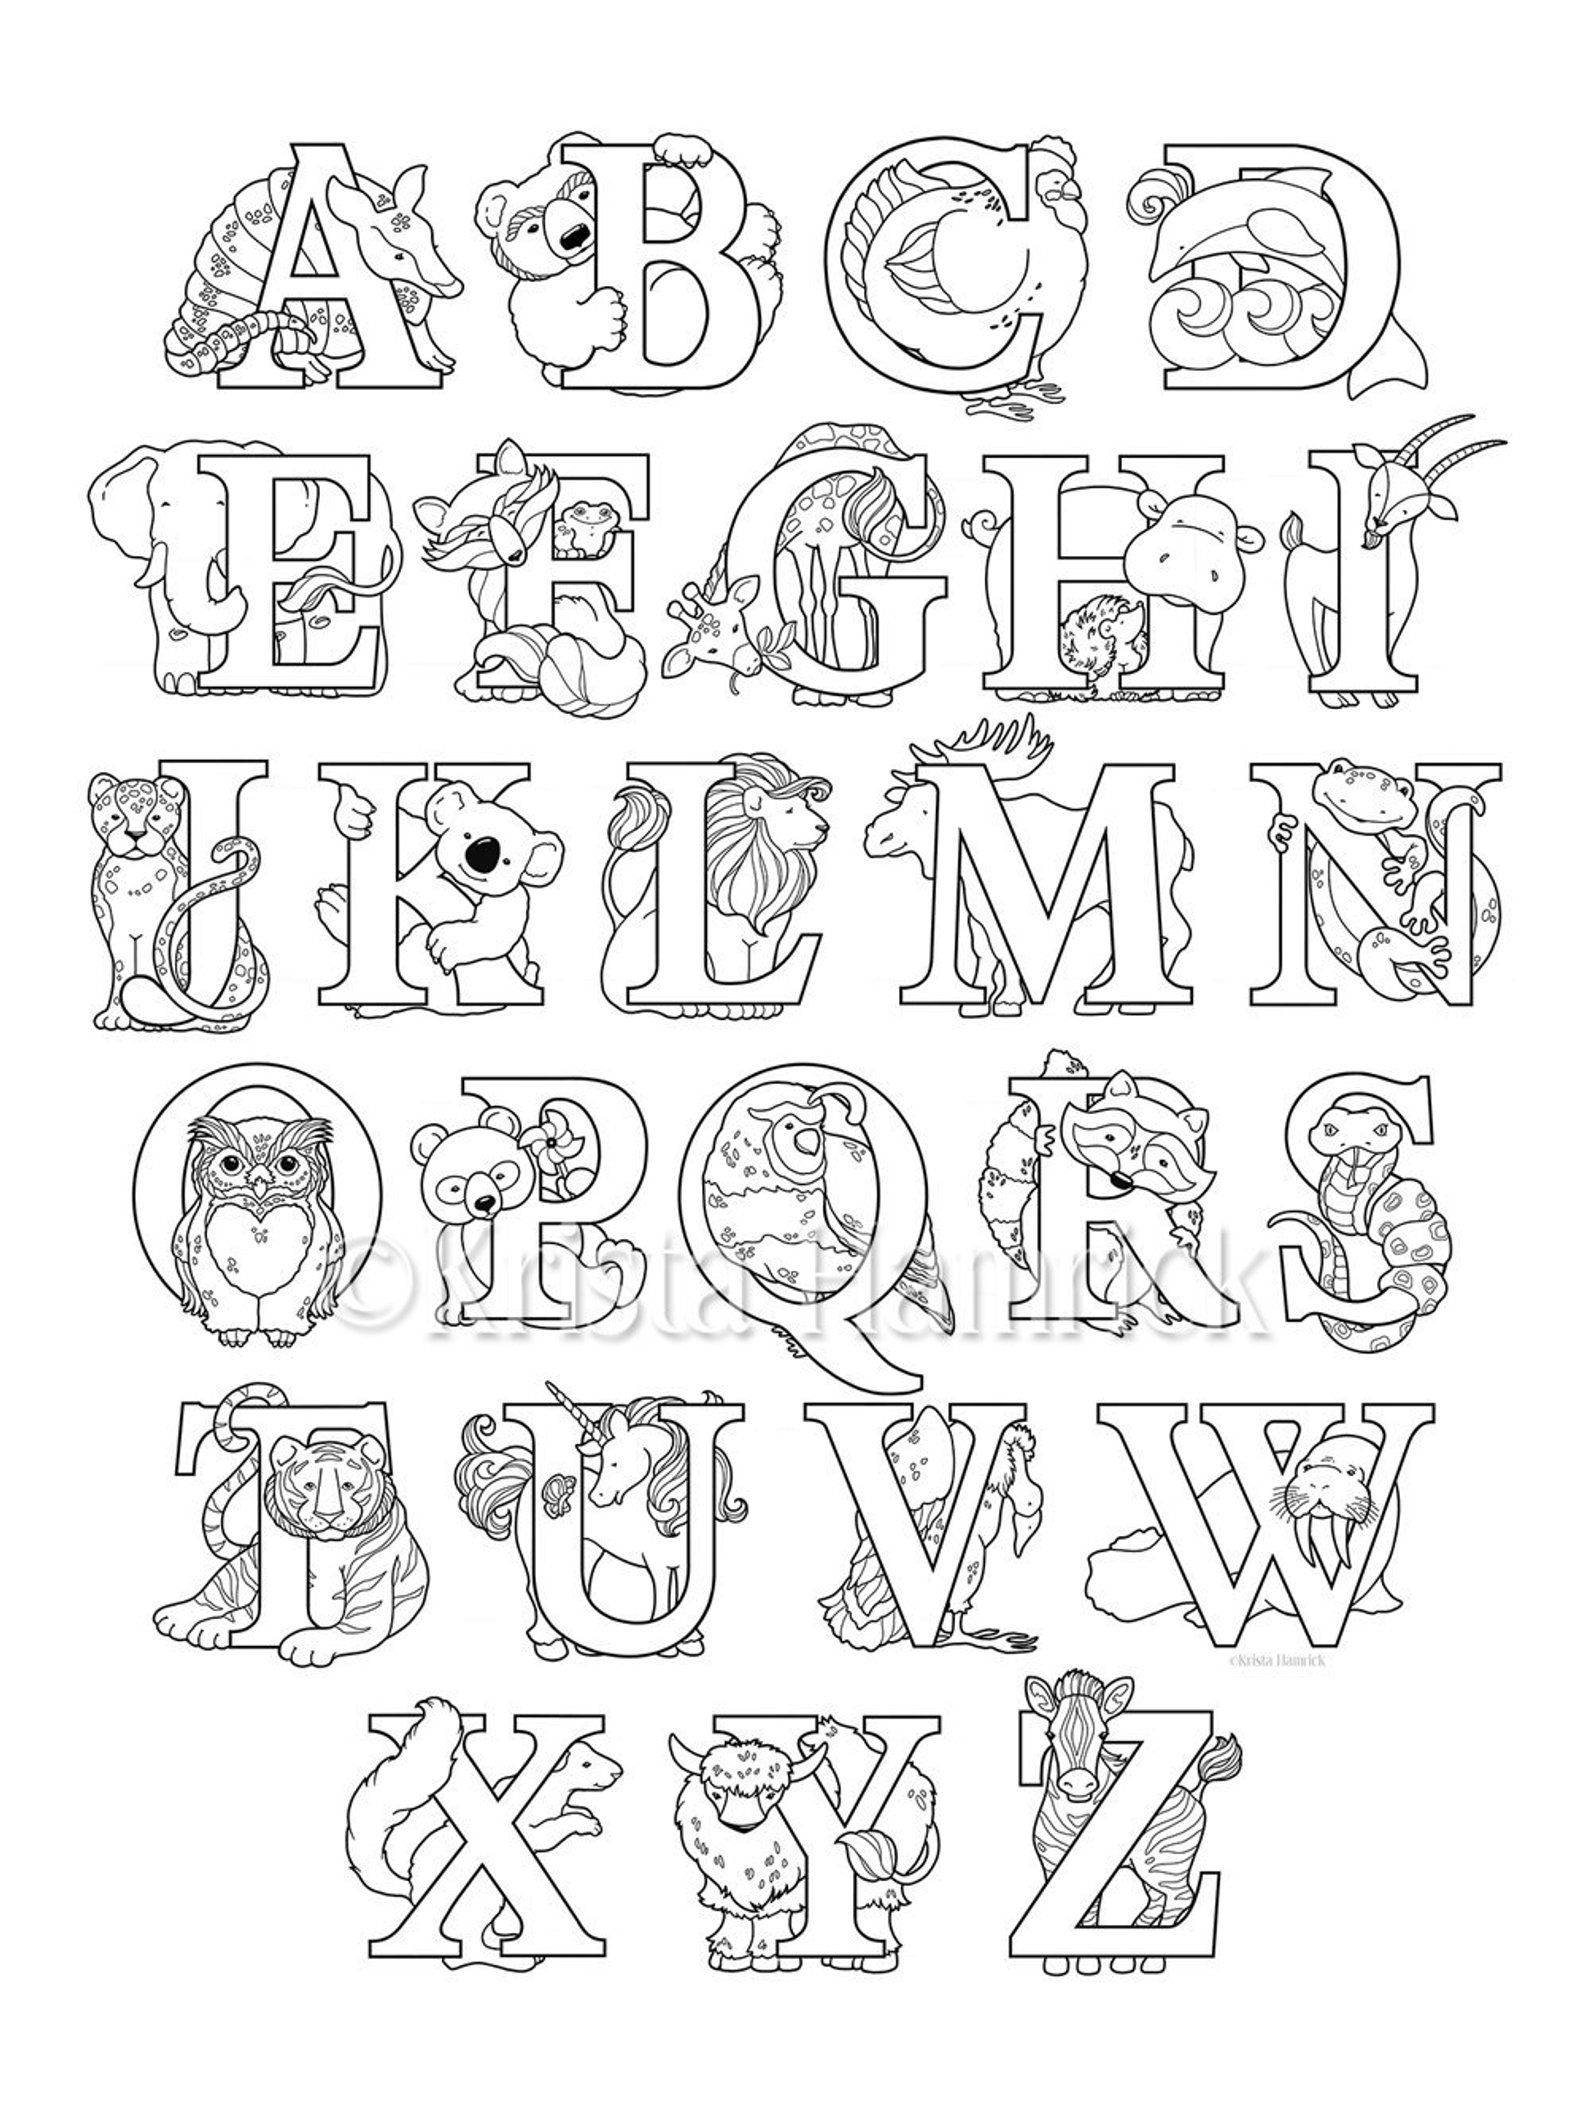 Animal Alphabet Coloring Page 8 5x11 Etsy Alphabet Coloring Pages Abc Coloring Pages Animal Coloring Pages